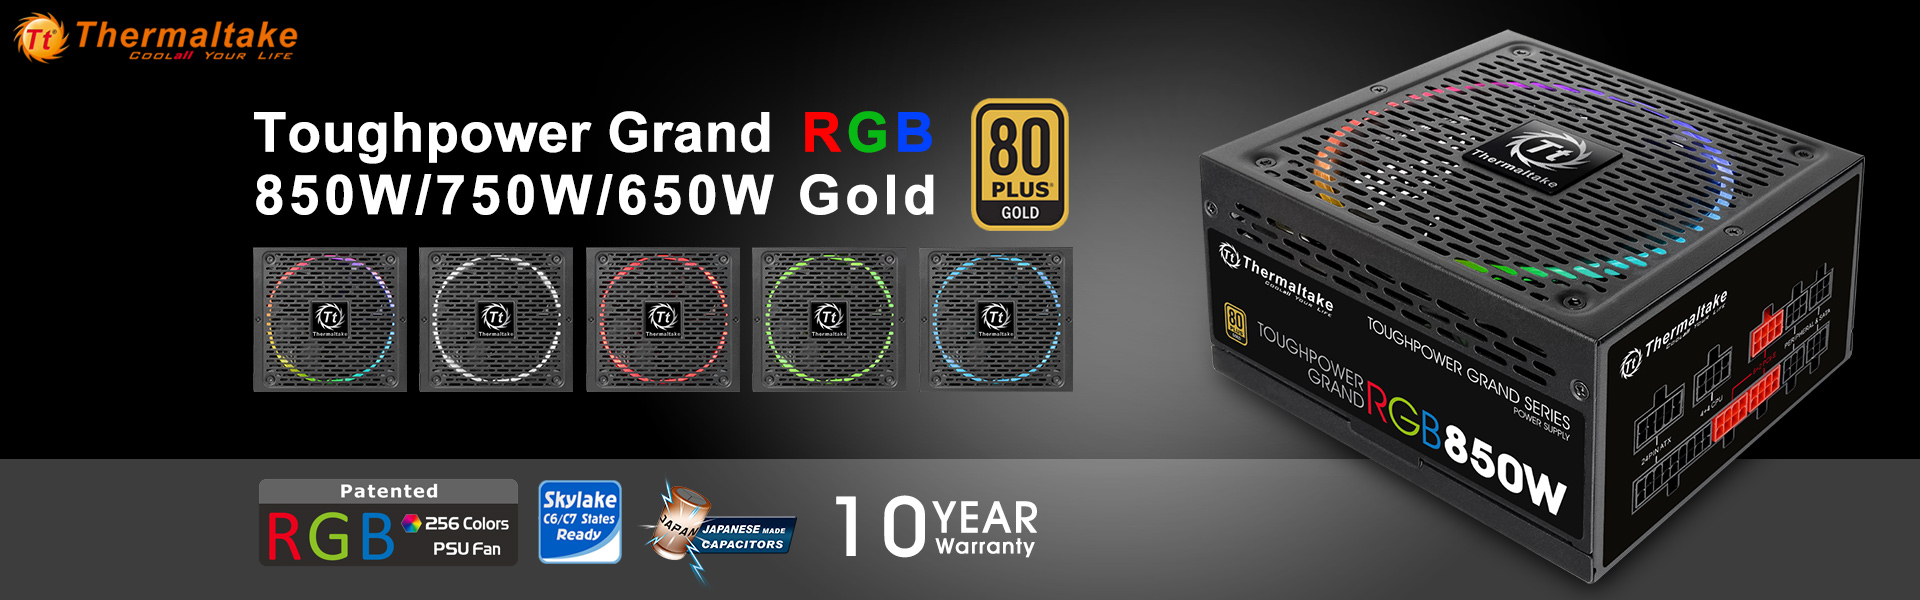 thermaltake-unveils-new-toughpower-grand-rgb-gold-series-power-supply-units